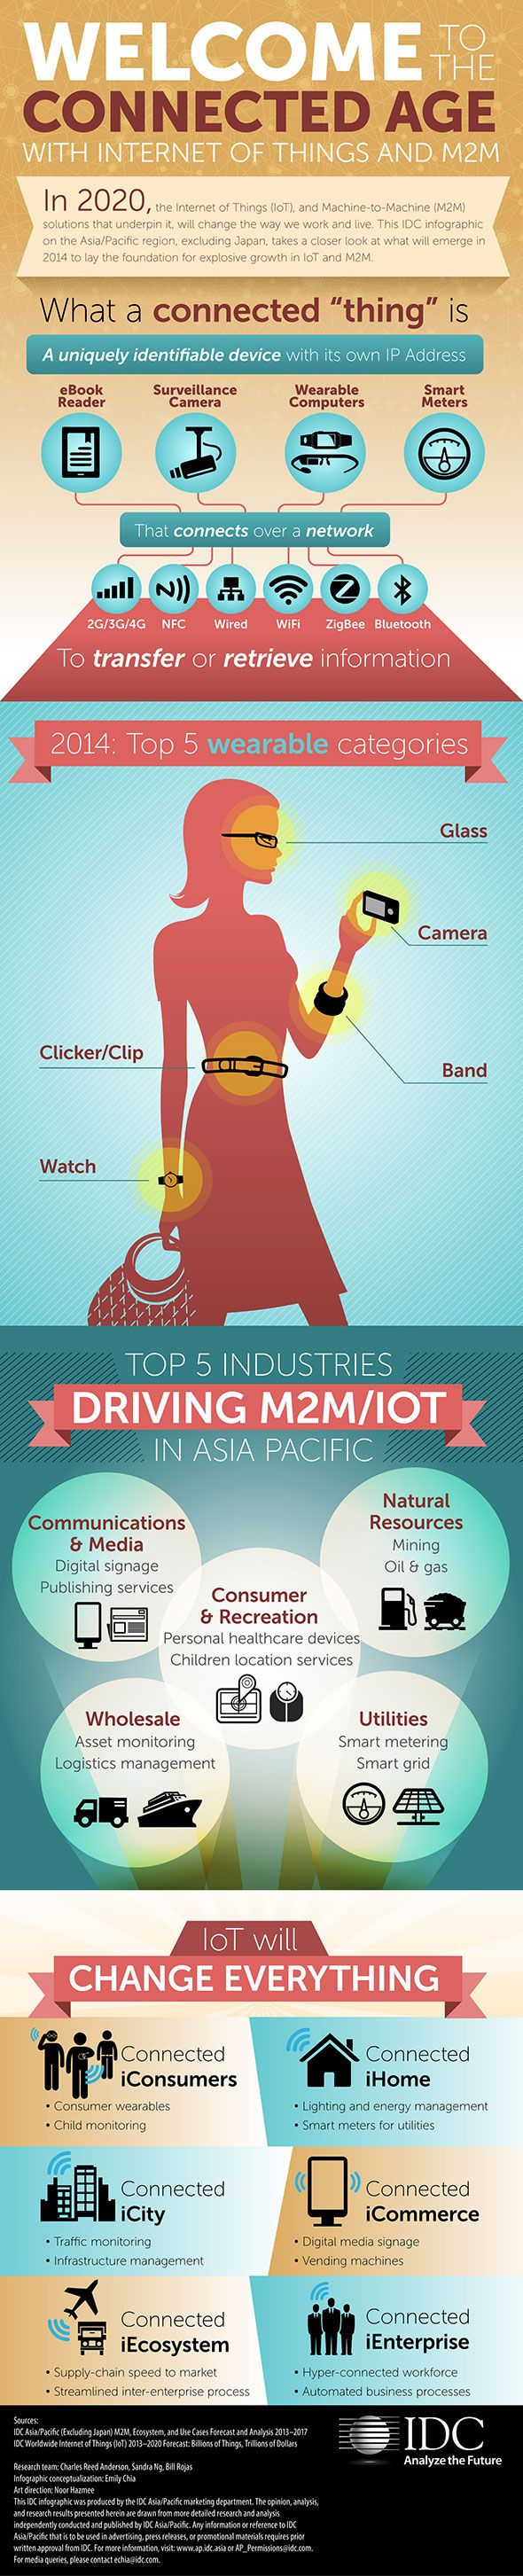 The explosive growth of M2M and IoT in Asia-Pacific region